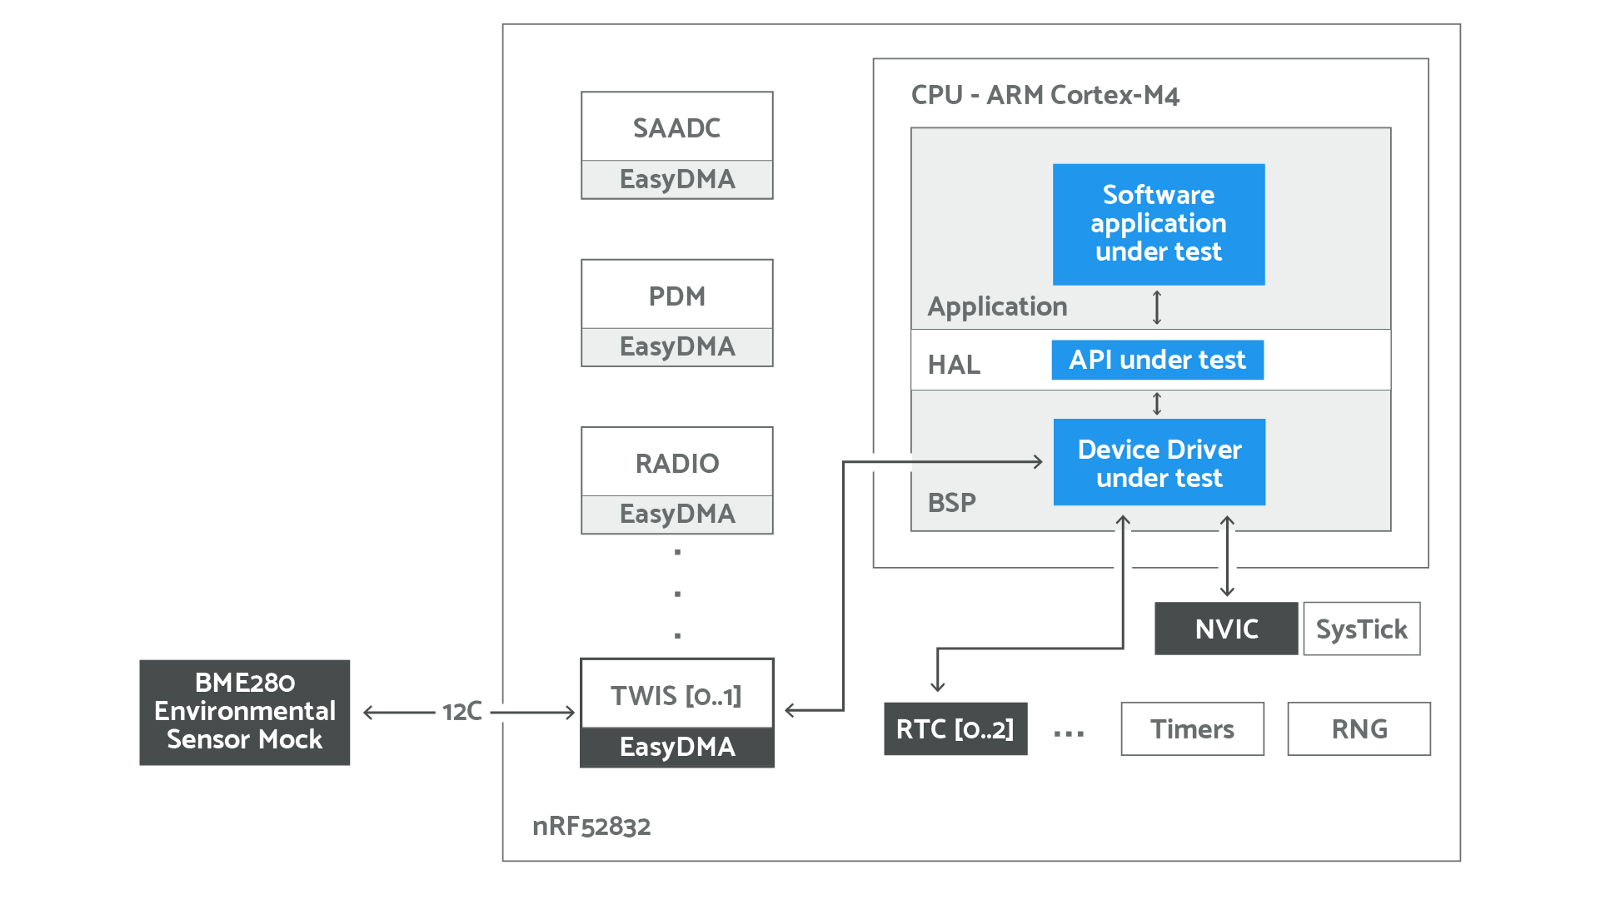 How To Automate Device Drivers Testing In Iot Embedded Software Projects The S Spi Timing Diagram We Want Handle That Leaves 2 Options For Test Execution 1 On Target Or A Hardware Simulator